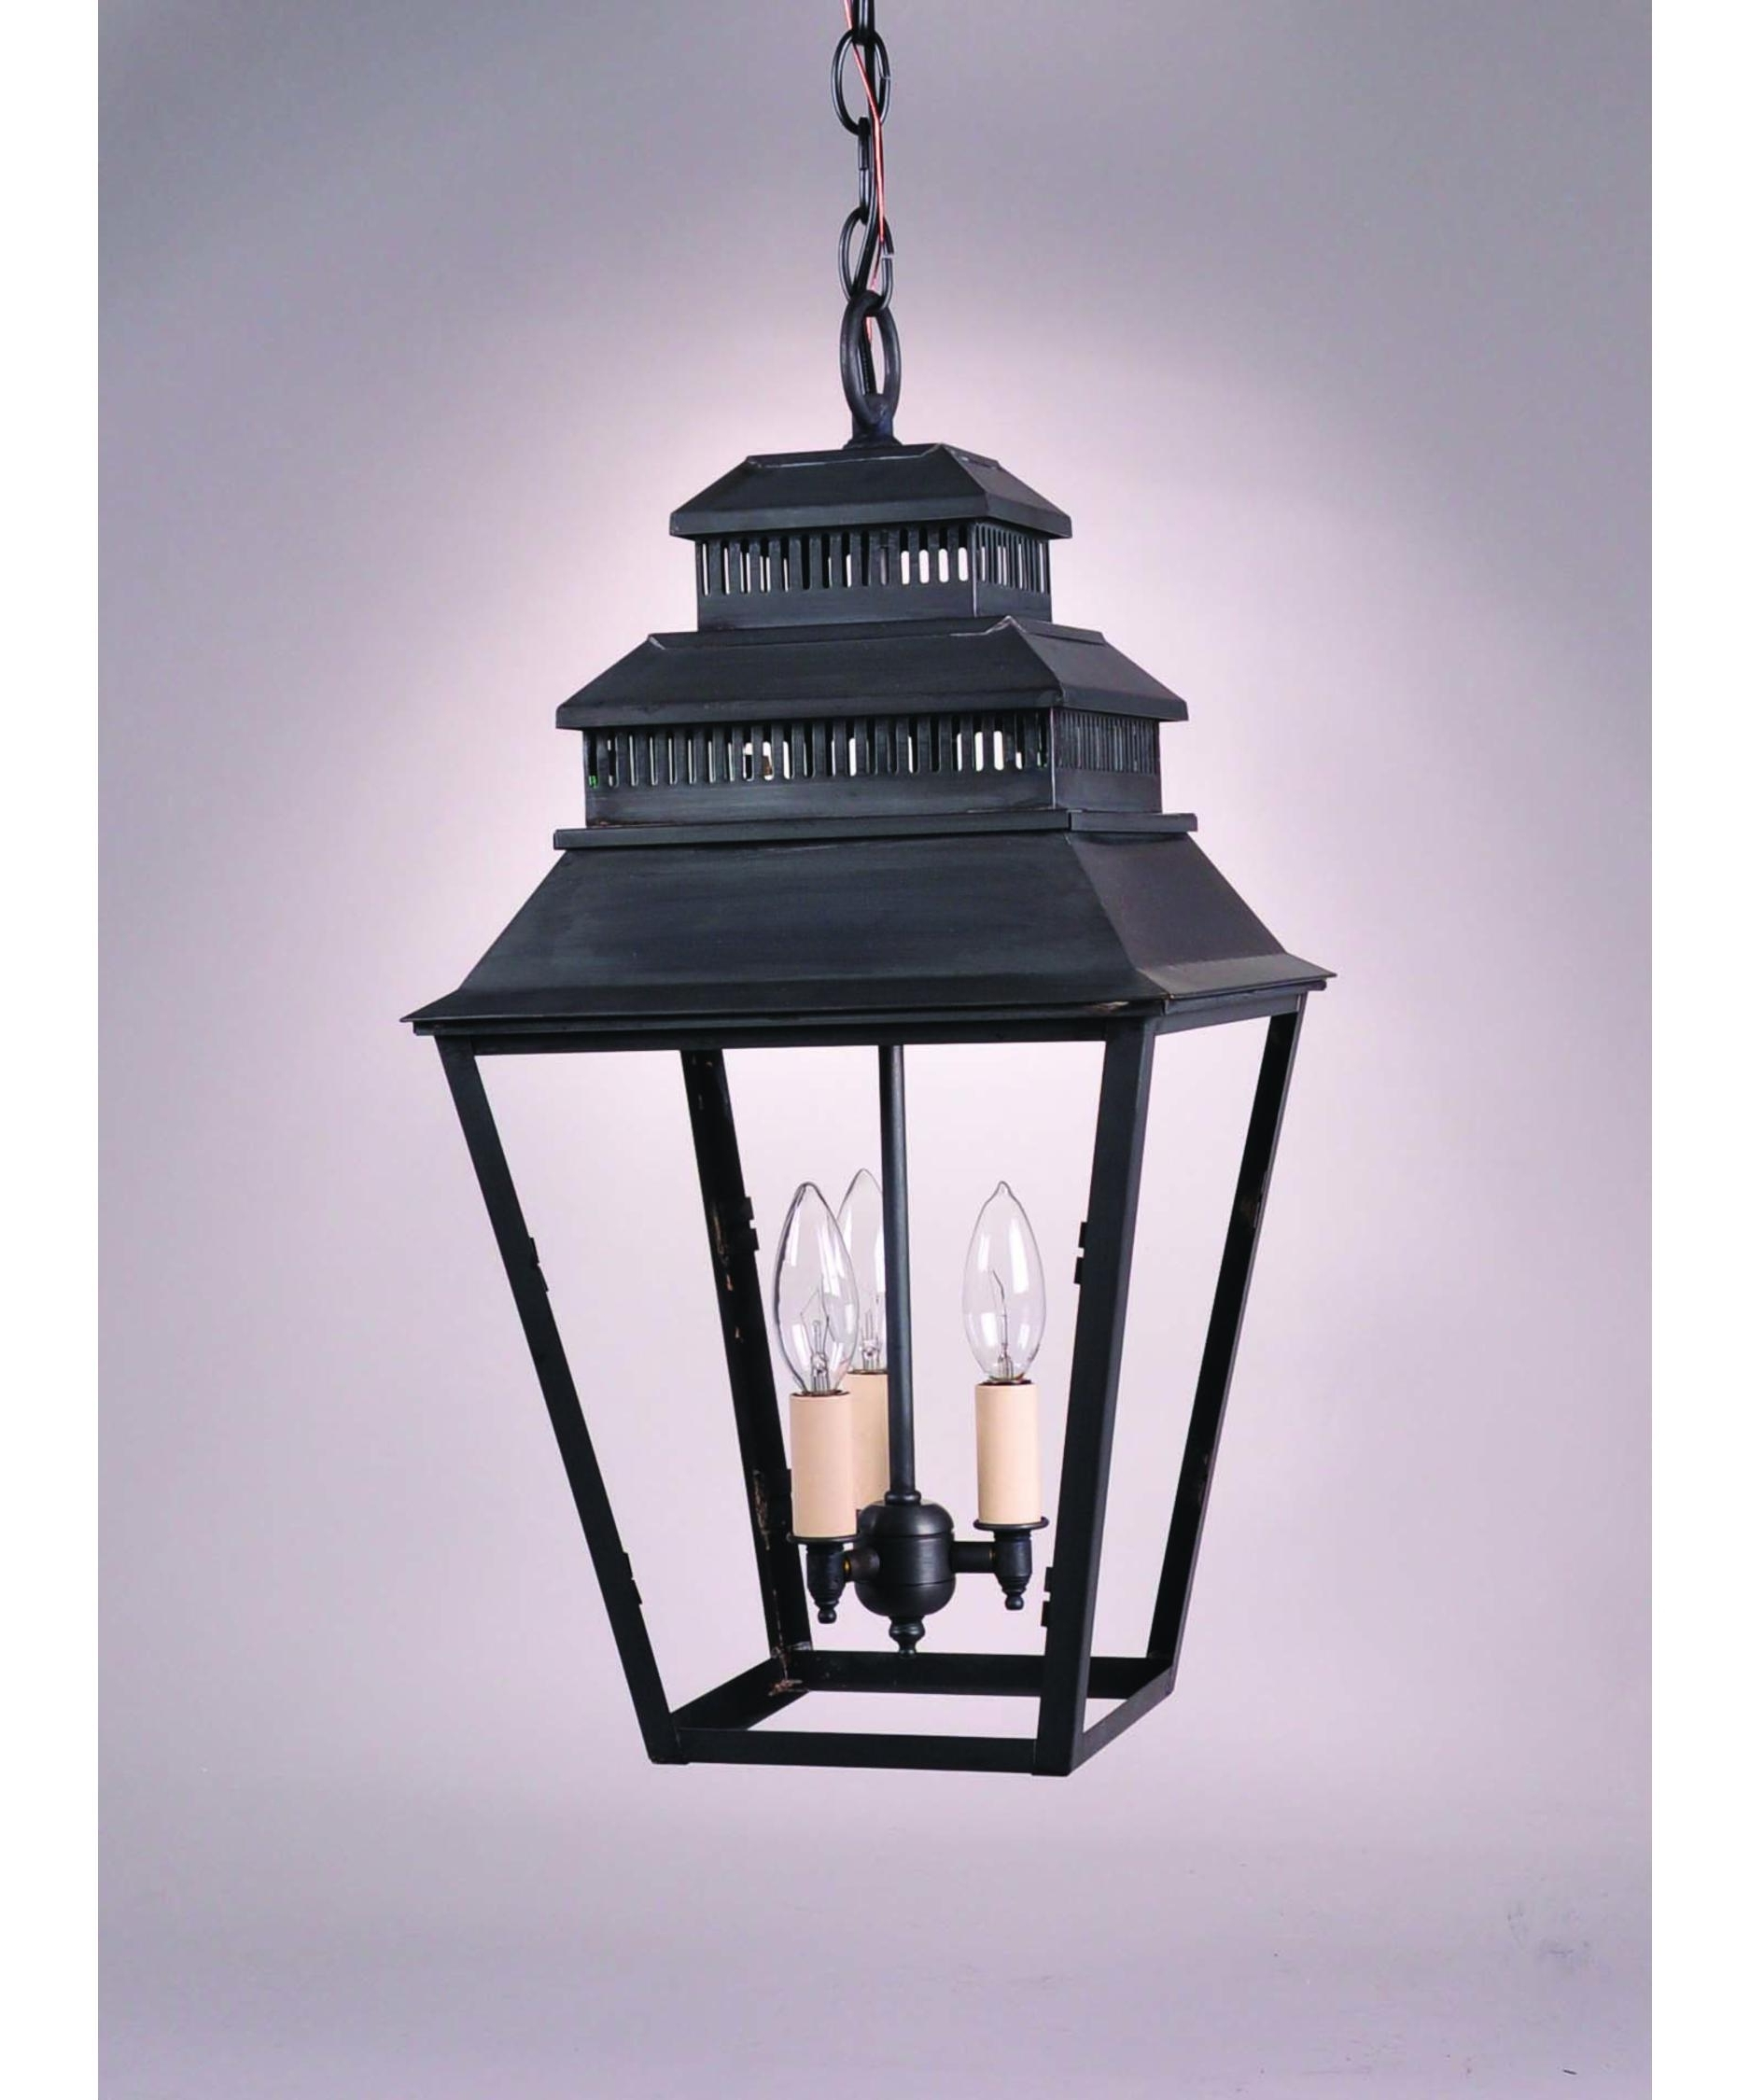 Furniture : Searchlight Genoa Outdoor Hanging Wall Lantern Light Throughout Best And Newest Outdoor Hanging Lanterns With Pir (View 5 of 20)